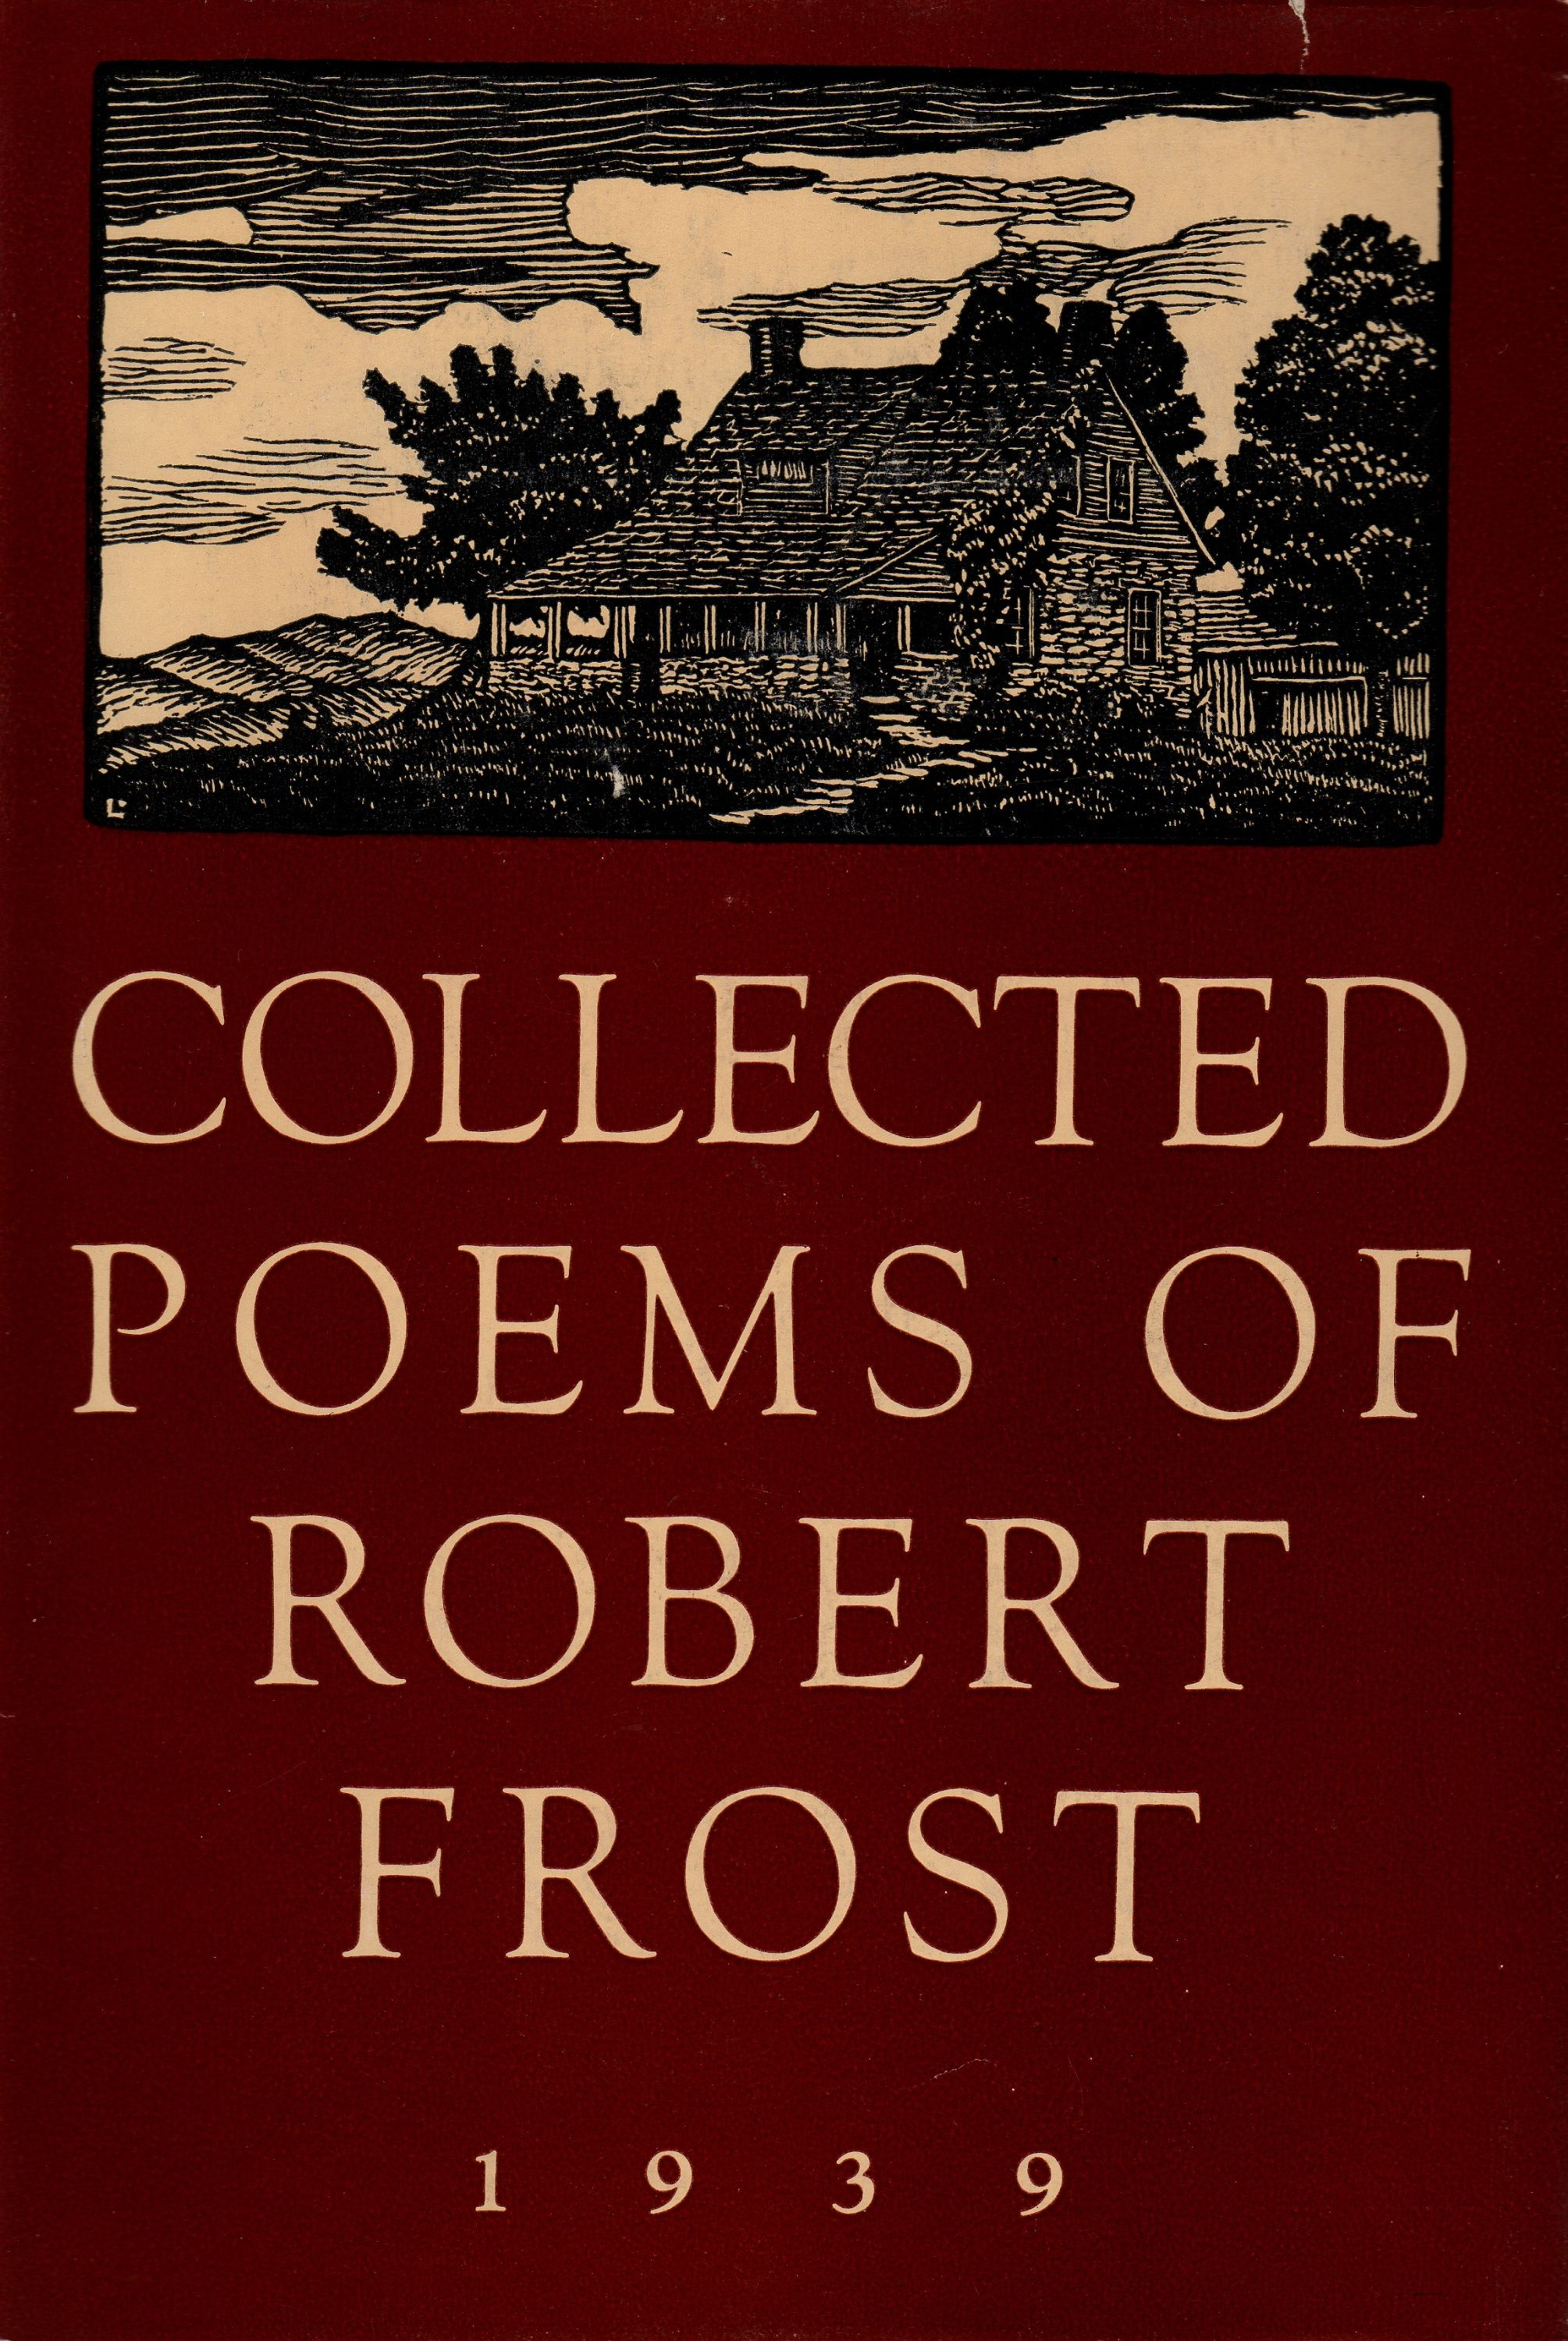 Robert frosts poetry classic books worth reading pinterest robert frosts poetry classic fandeluxe Choice Image